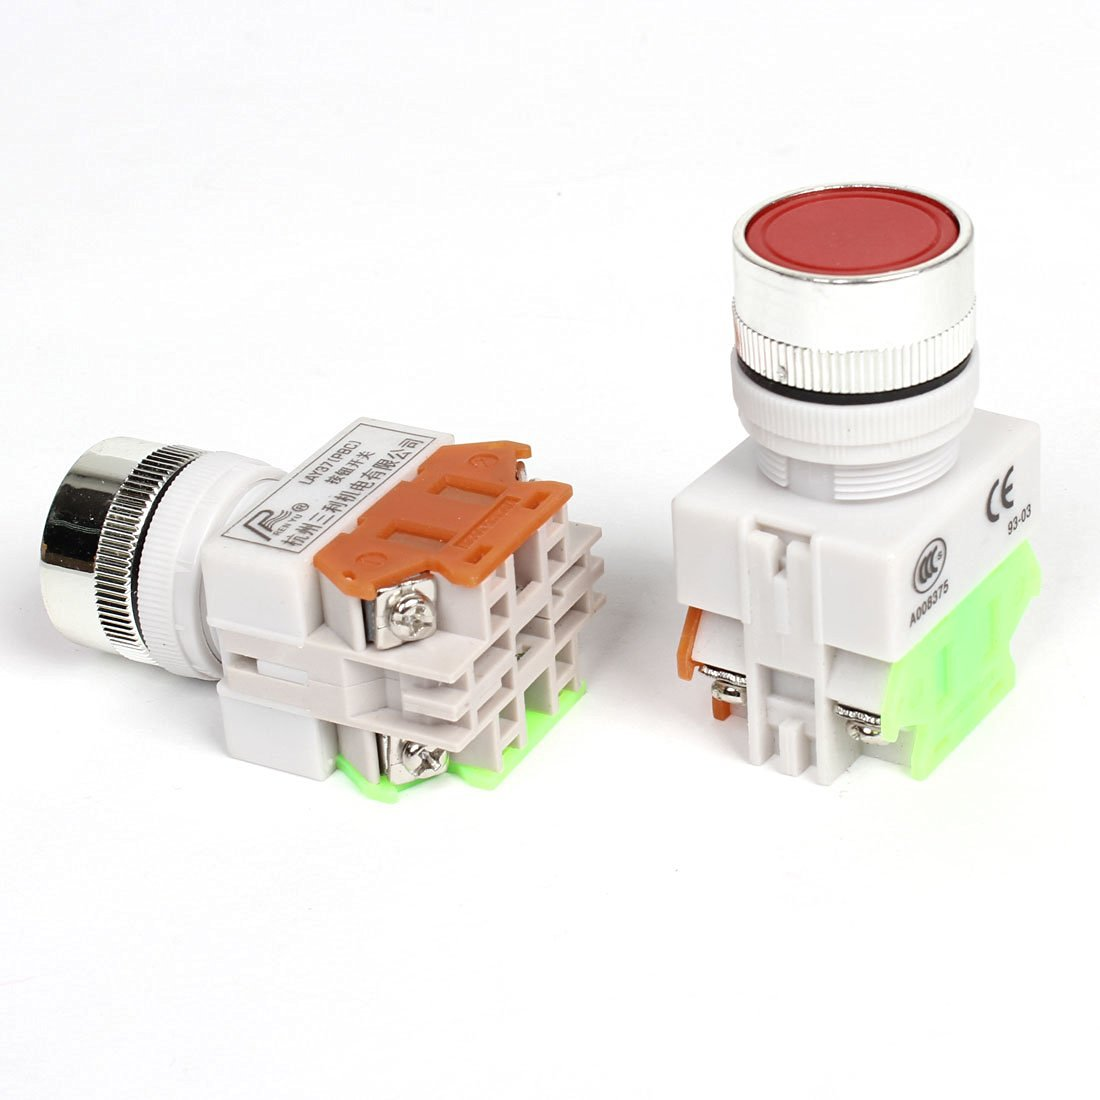 24mm Panel Mounted Self-Locking Red Mushroom Push Button Switch 660VAC 10A DPST